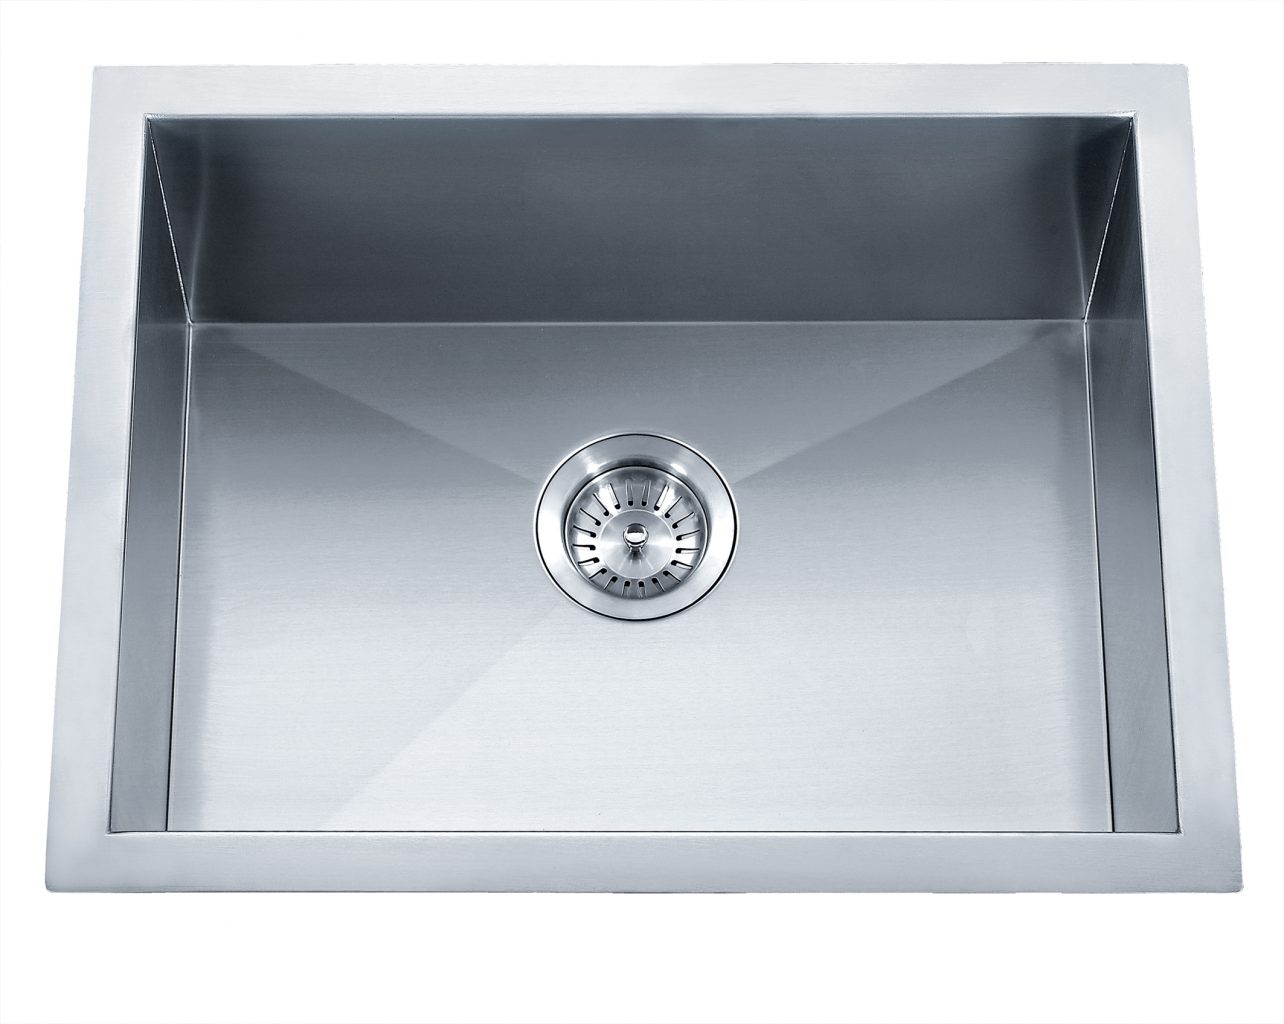 Handmade Series Undermount Stainless Steel Kitchen Sink | Single ...